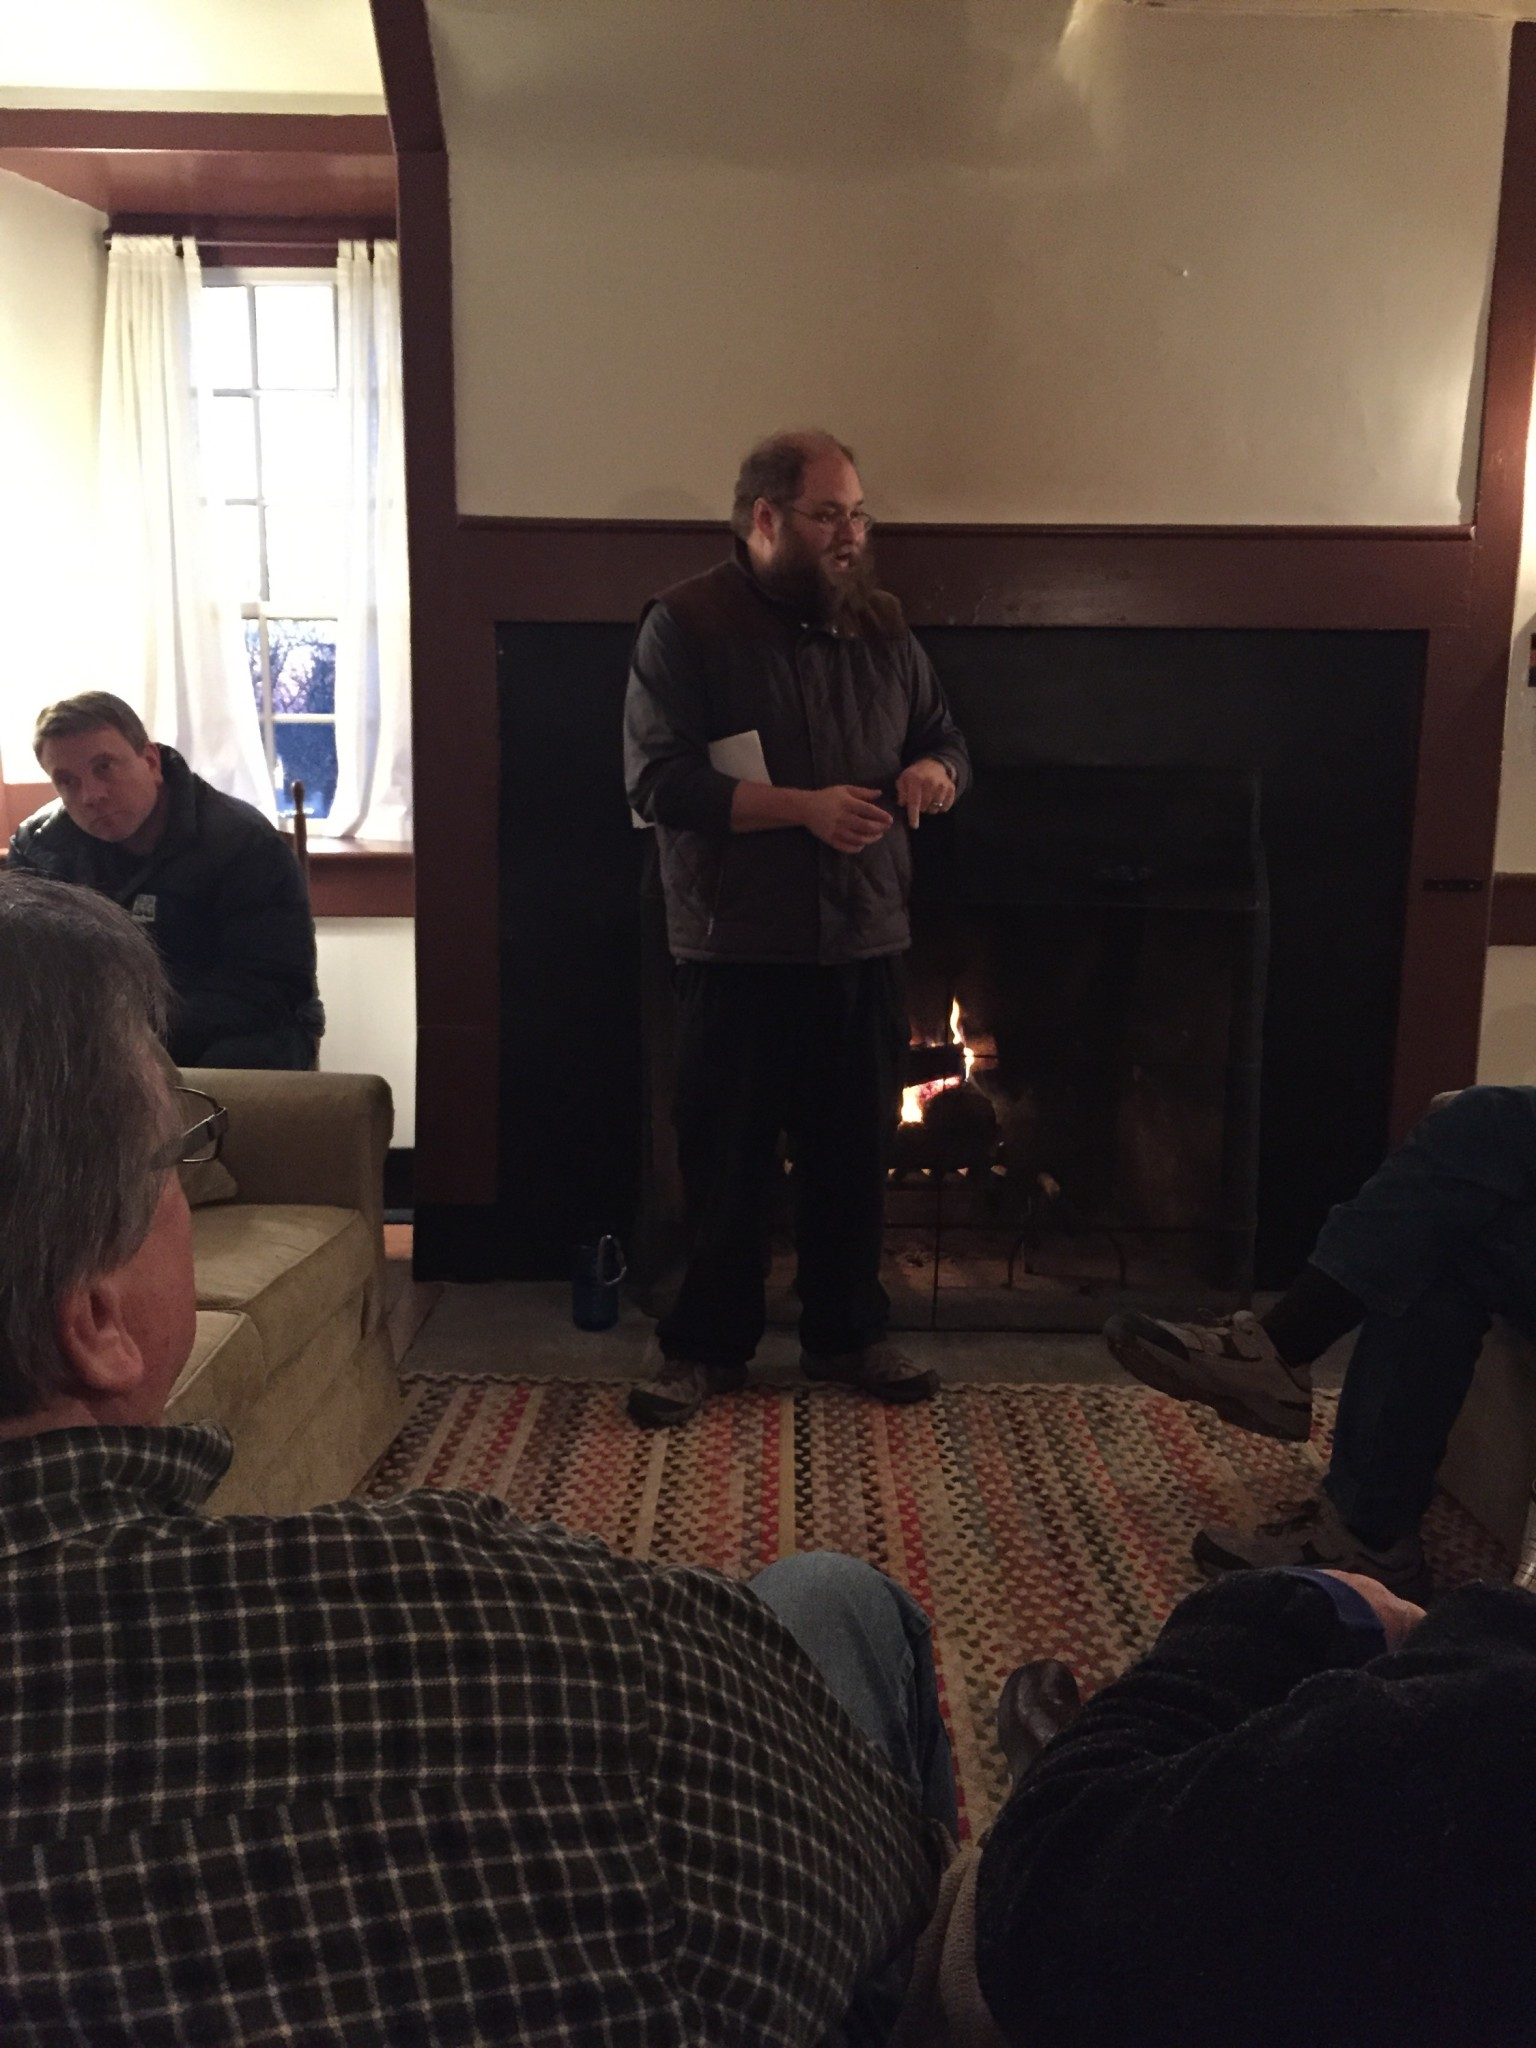 Fireside chat with Johnathan at Shakertown